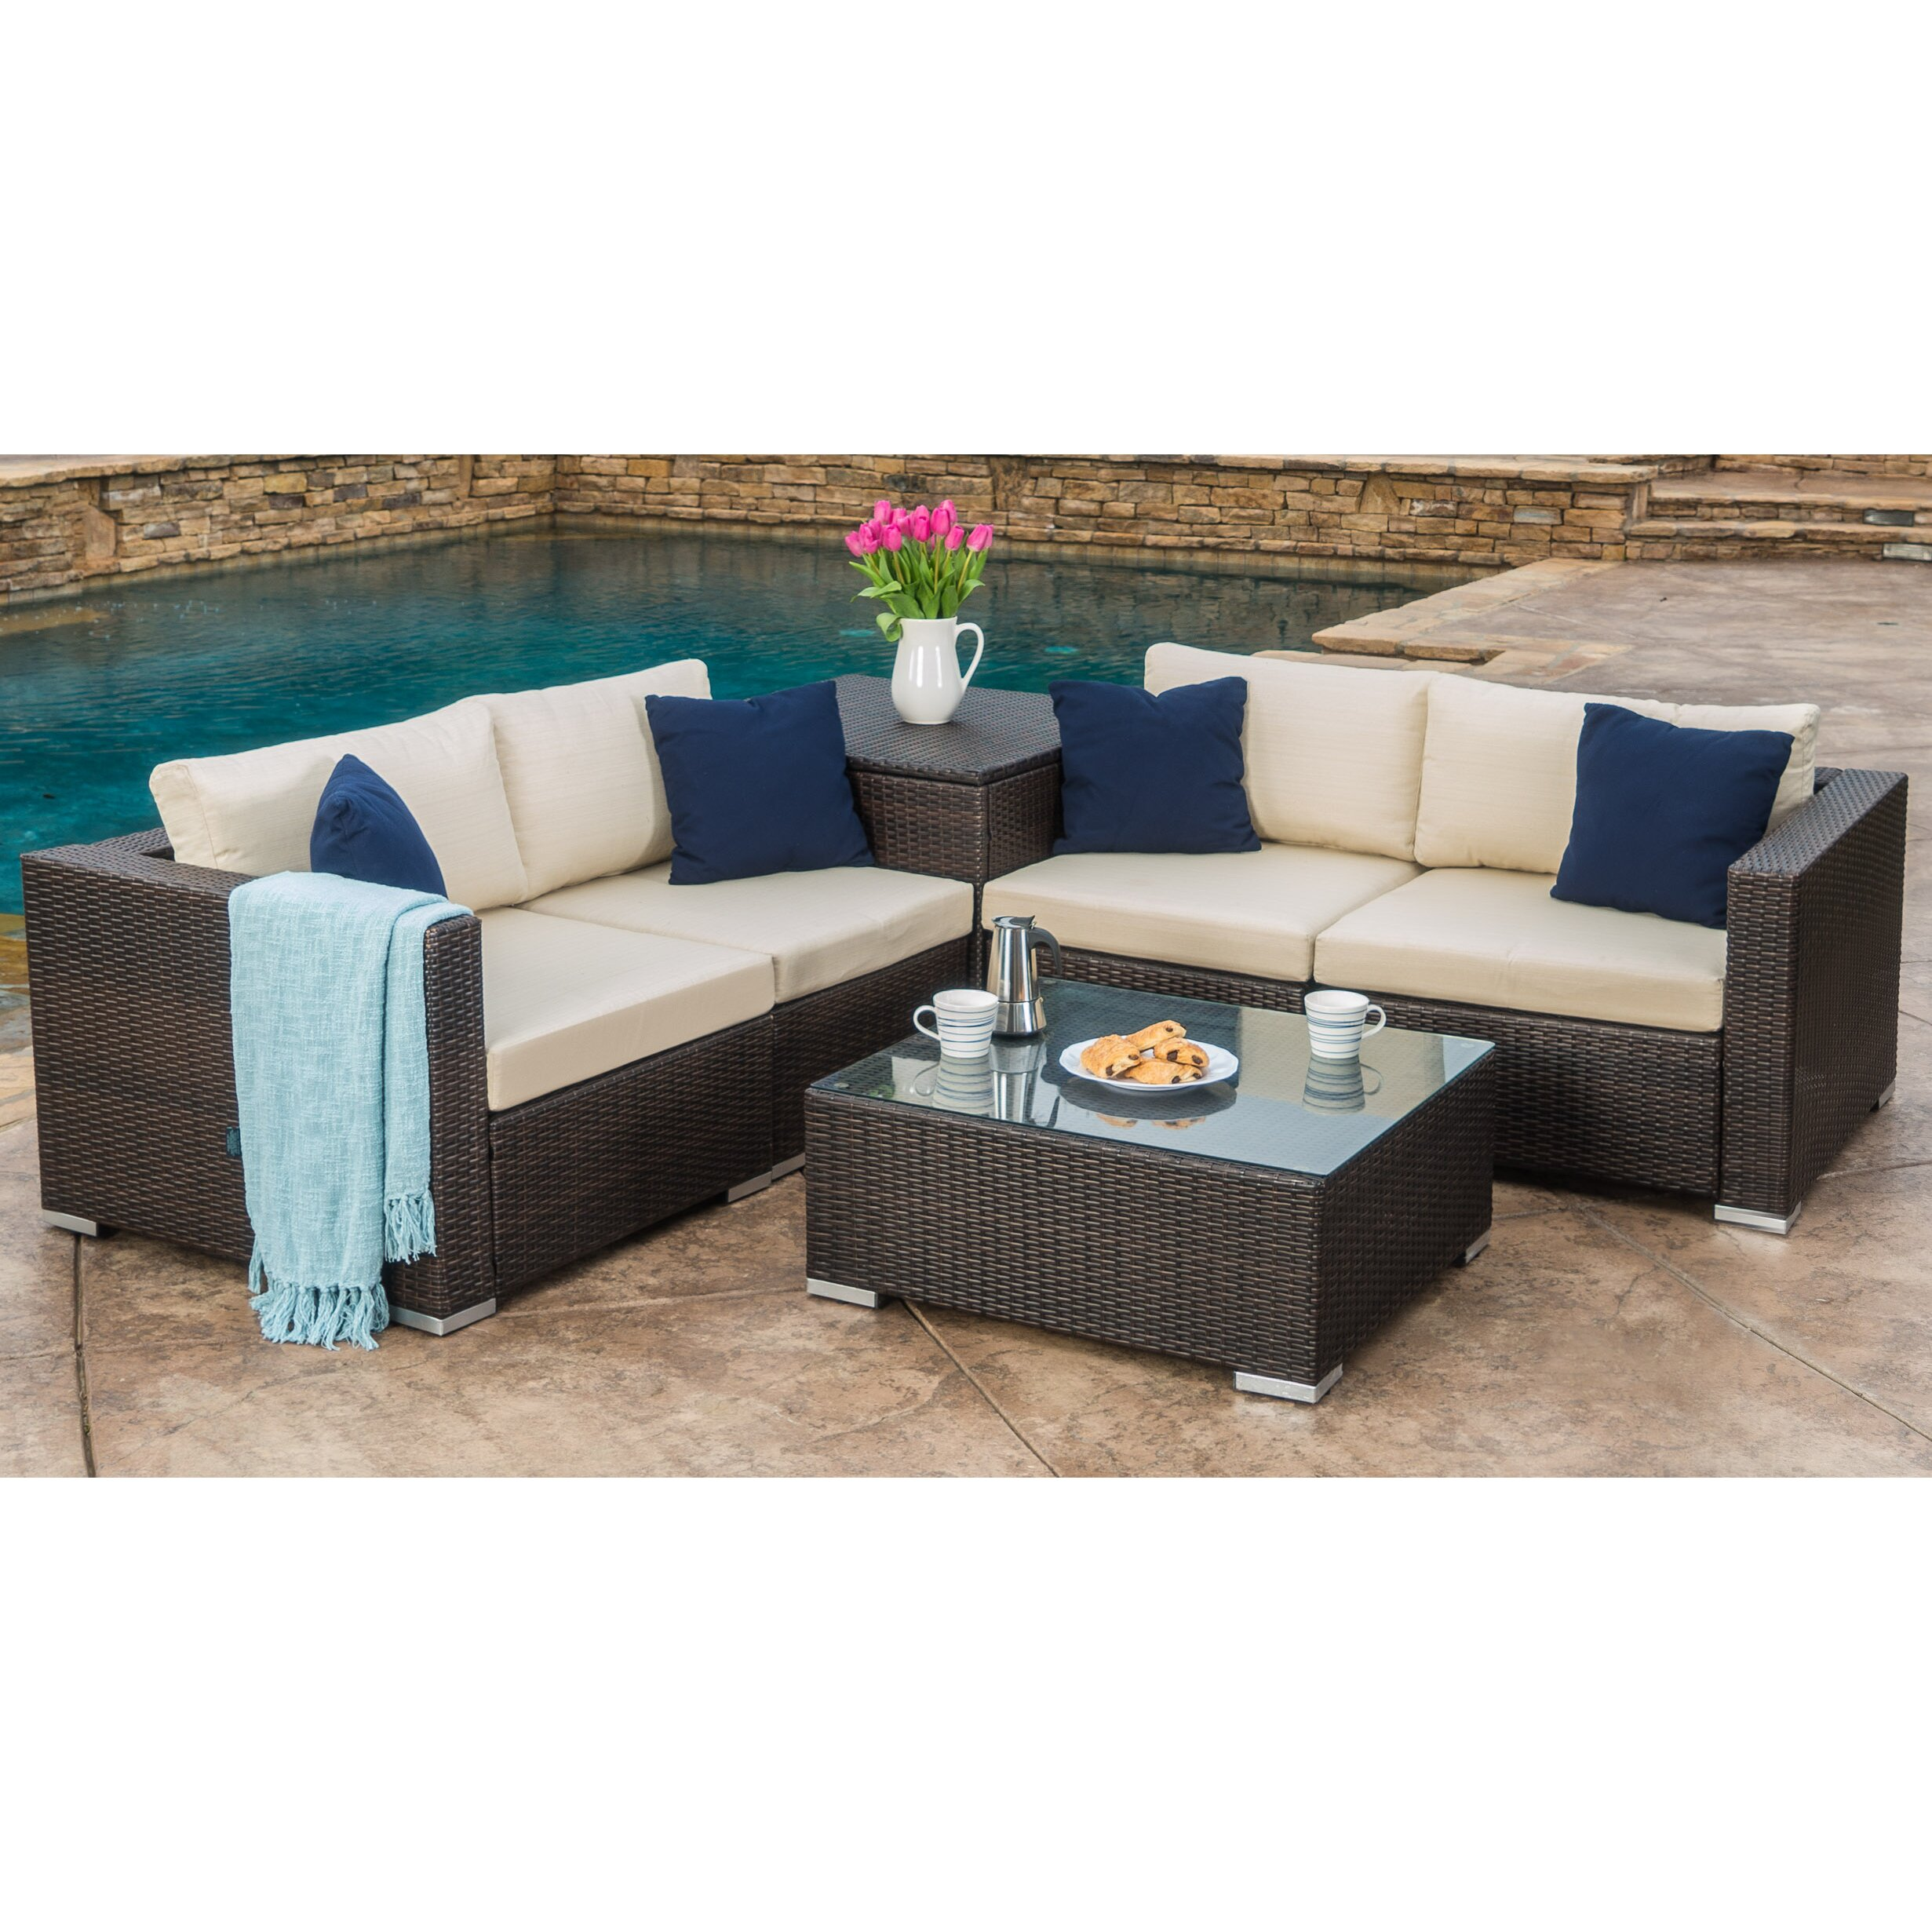 Outdoor Sectional Seating